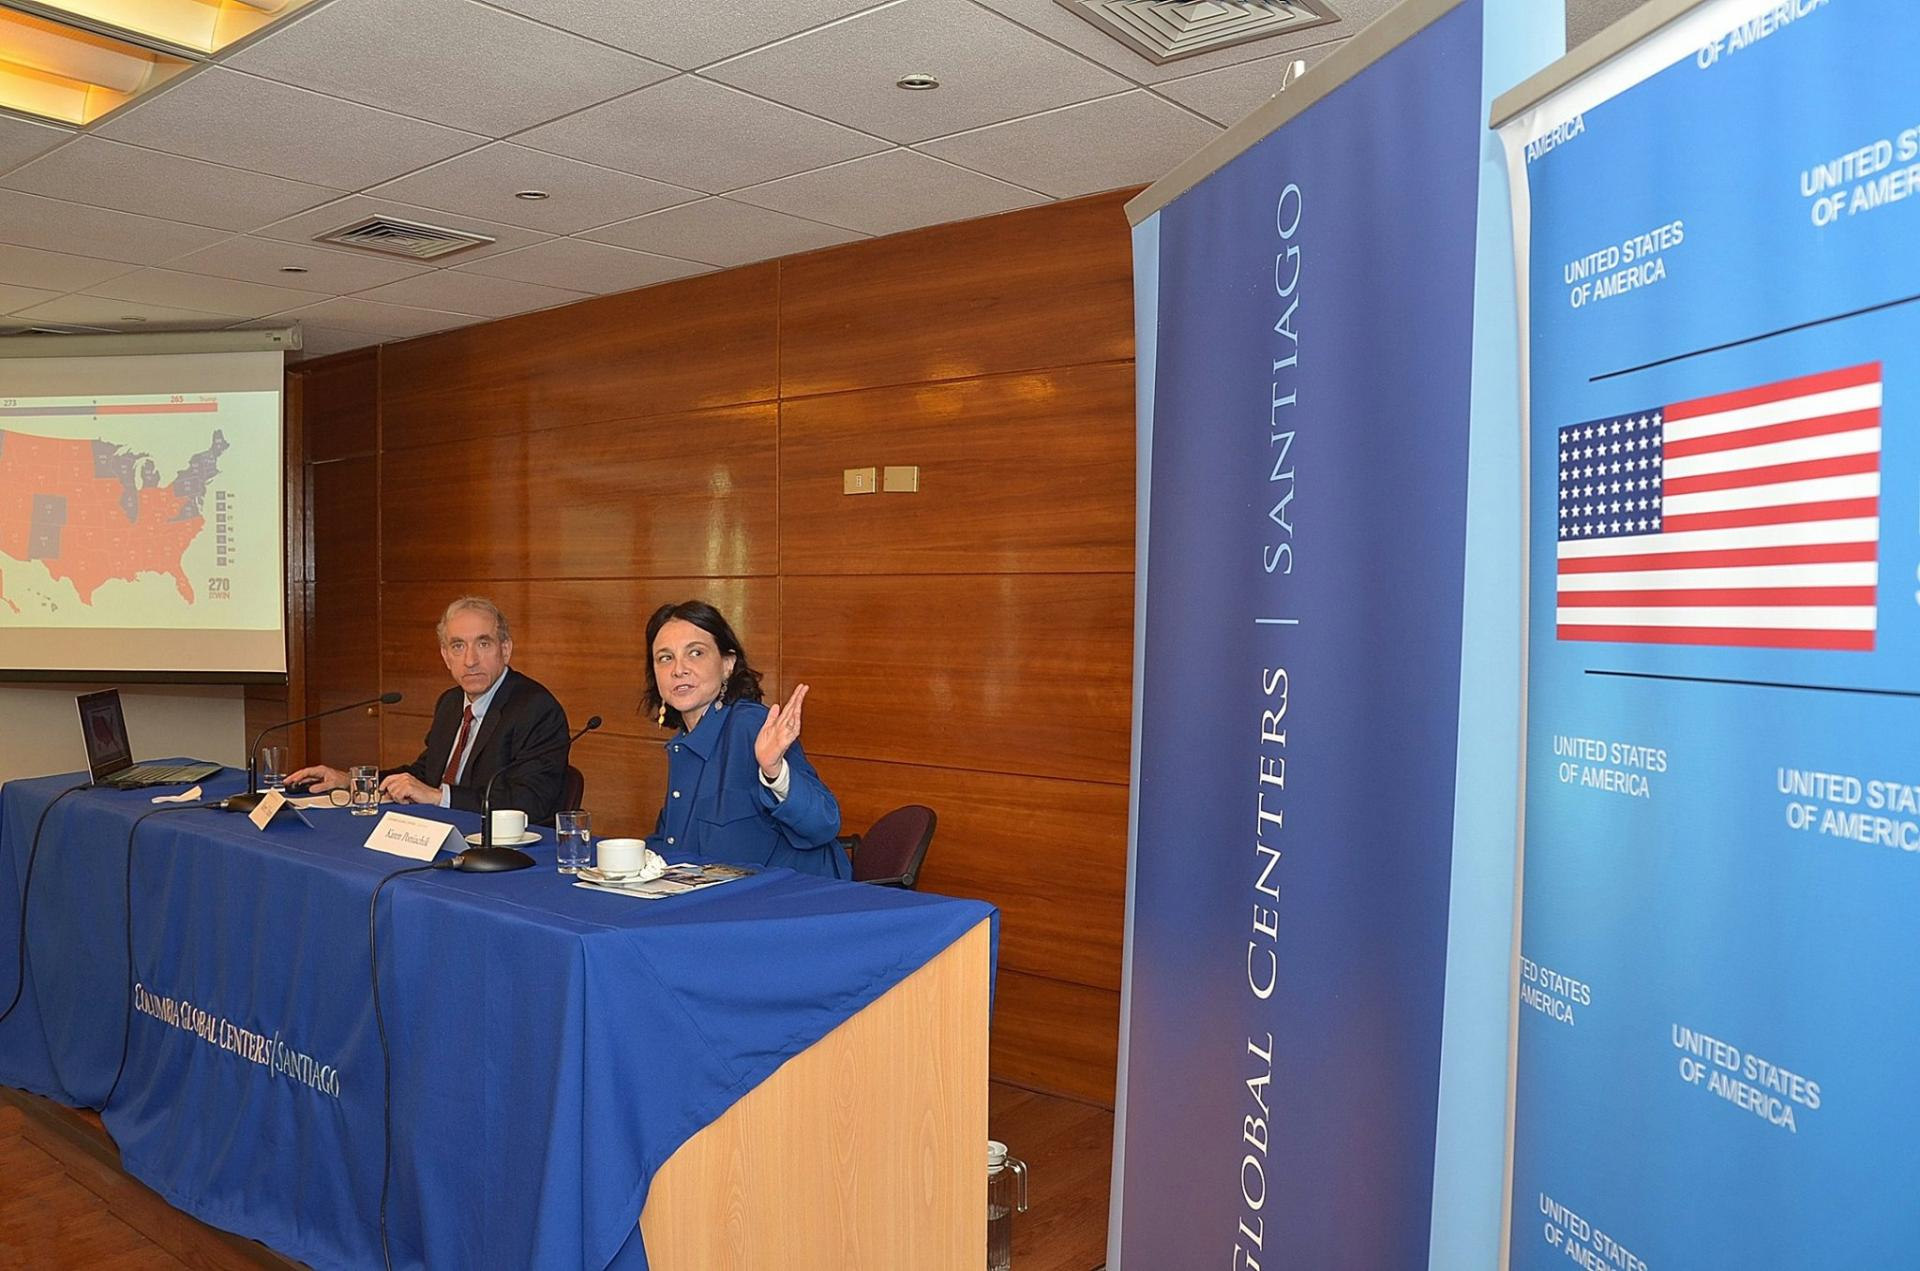 Professor Robert Y. Shapiro; and Karen Poniachik, Director of Columbia Global Centers l Santiago.